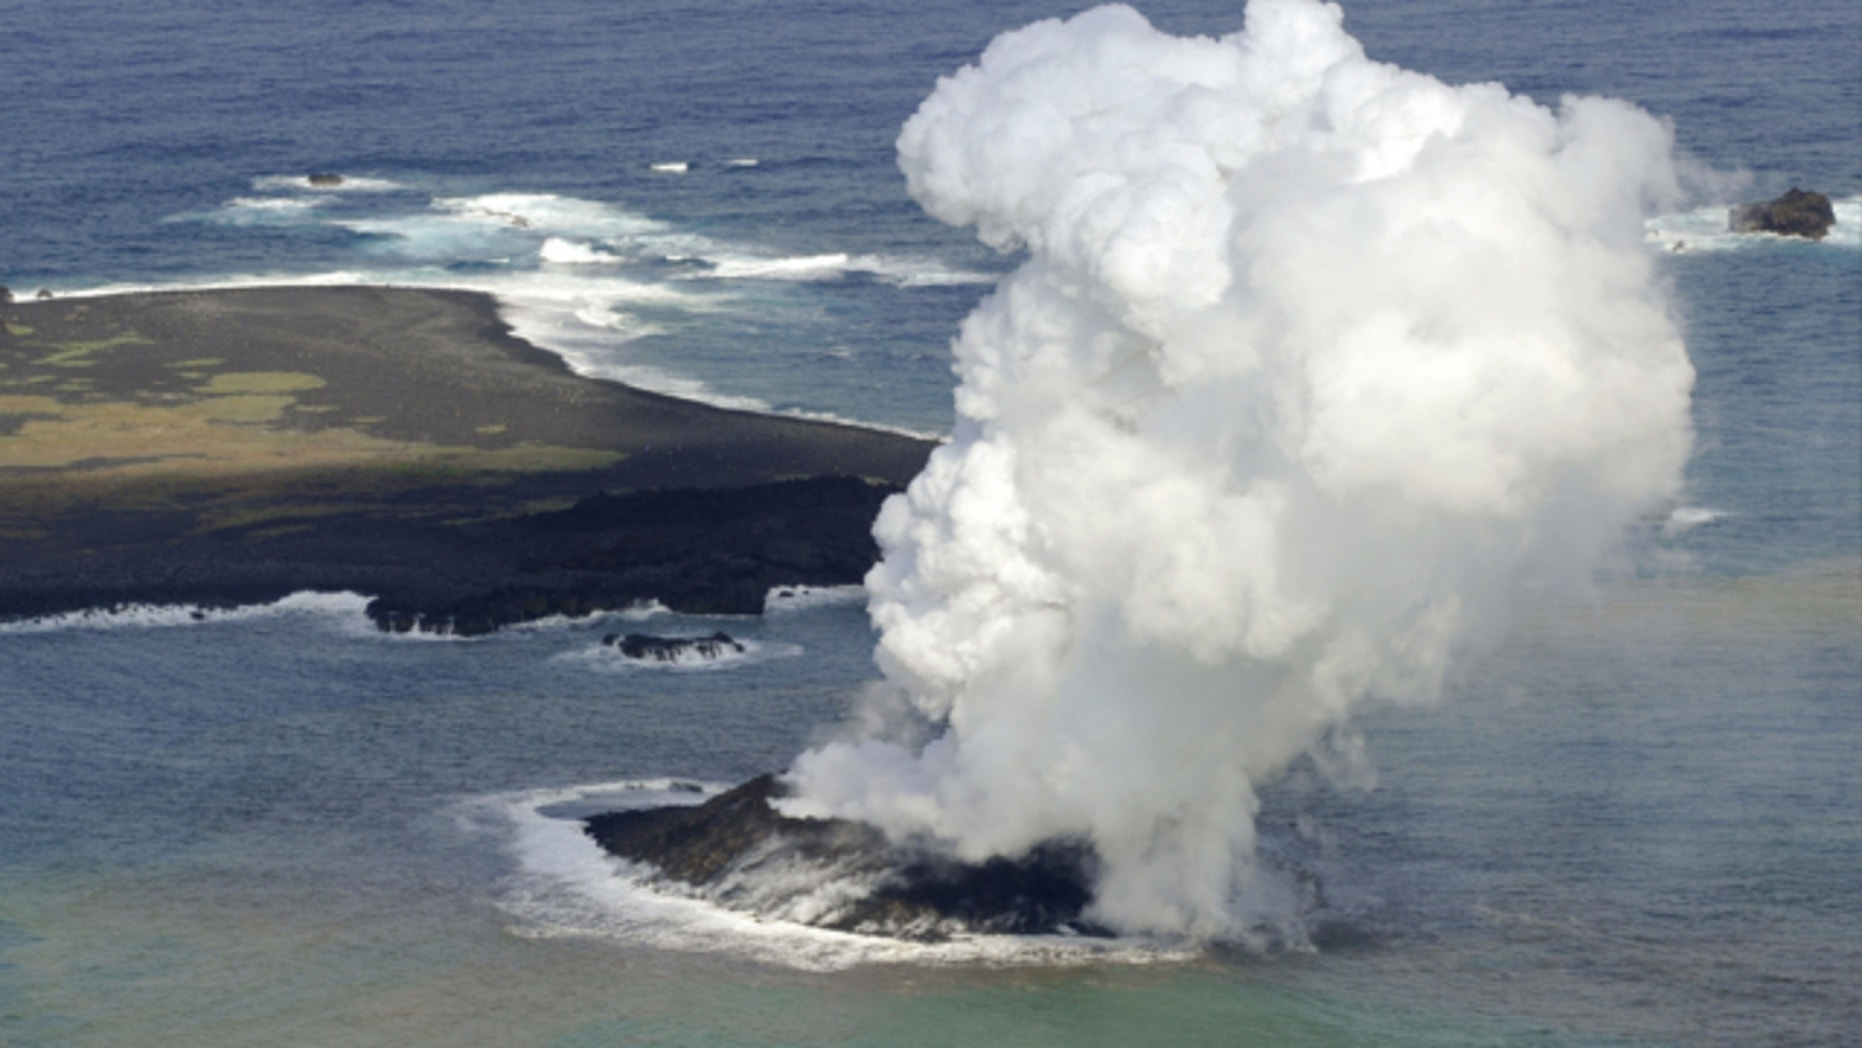 Nov. 21, 2013: Smoke billows from a new island off the coast of Nishinoshima, seen left above, a small, uninhabited island in the Ogasawara chain, far south of Tokyo.